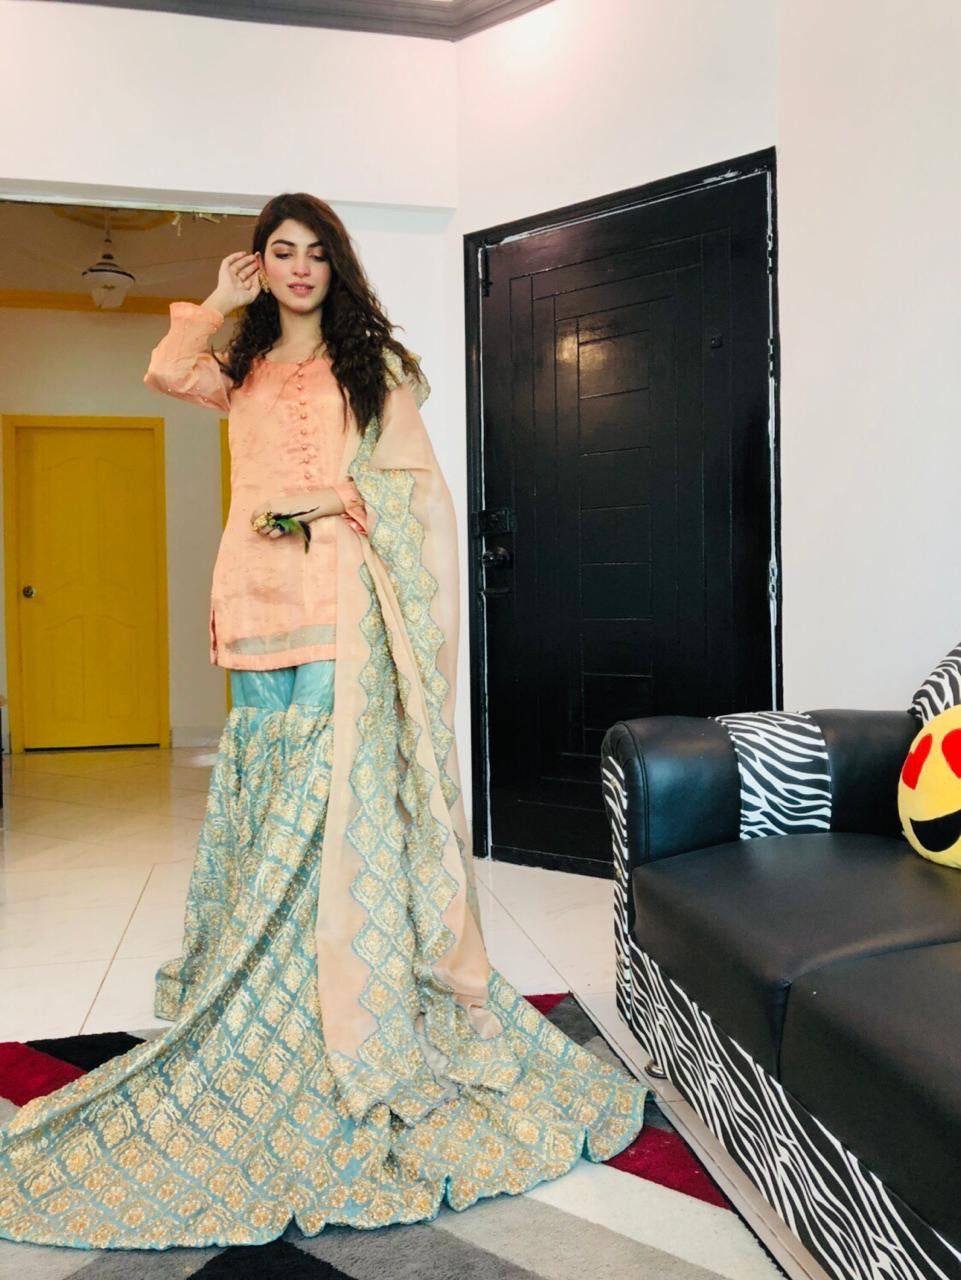 A-meenah Markab Wedding Edit 2019 Vol-1 | The Kinza Hashmi